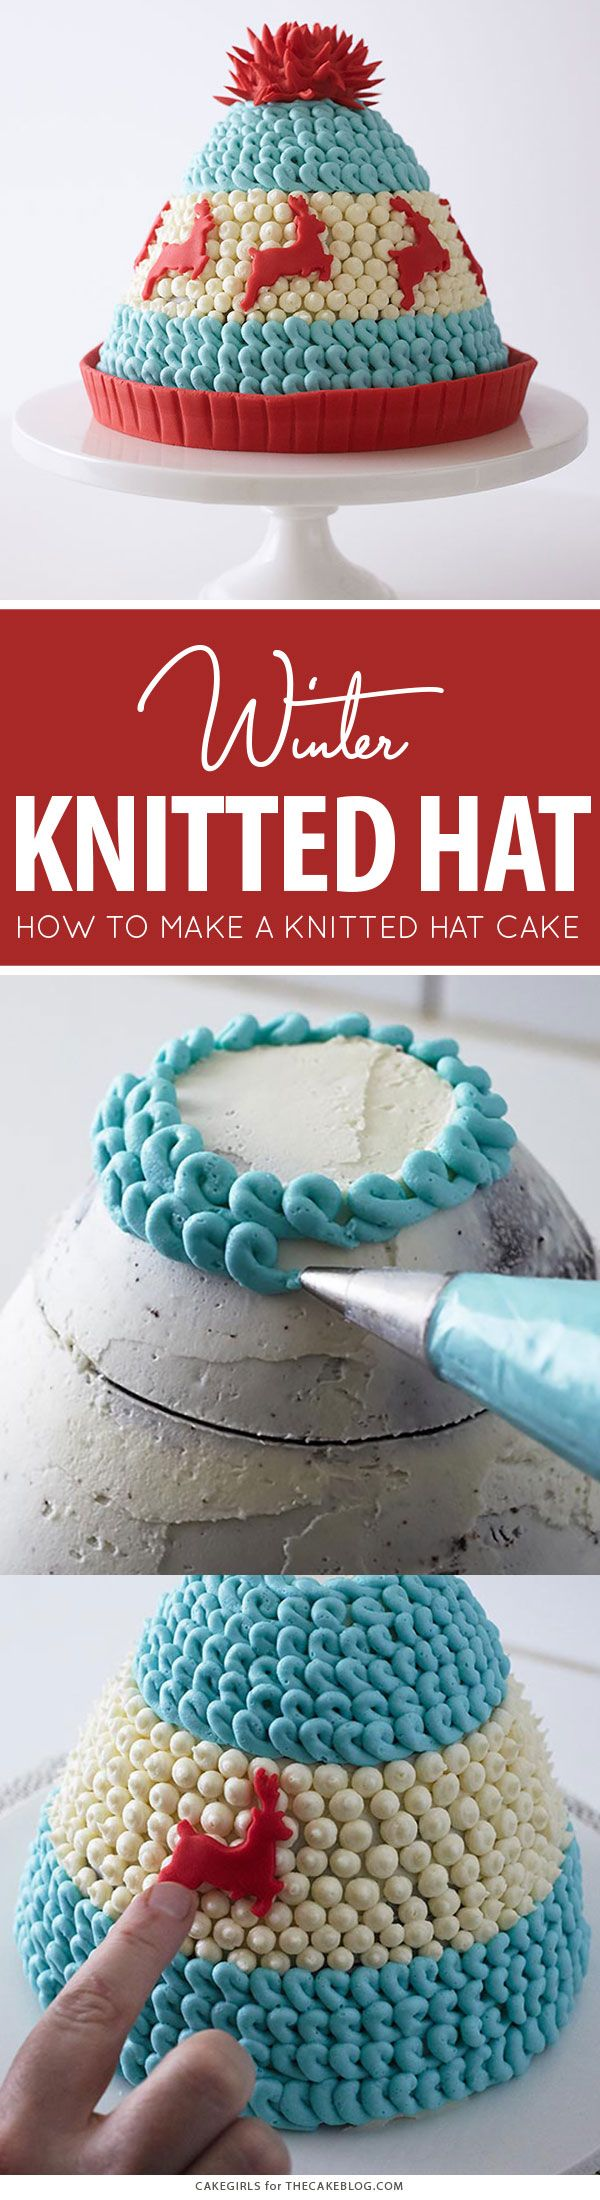 Winter Hat Cake - learn how to make this cozy cake that looks just like a knitted hat   by Cakegirls for TheCakeBlog.com